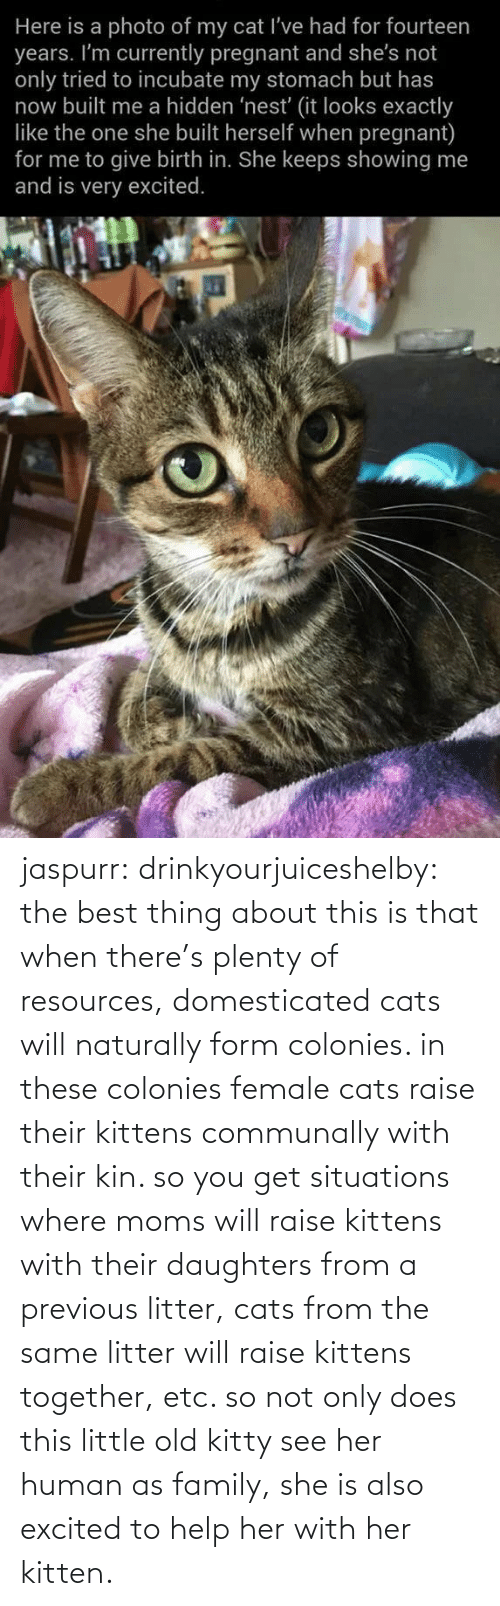 will: jaspurr:  drinkyourjuiceshelby:    the best thing about this is that when there's plenty of resources, domesticated cats will naturally form colonies. in these colonies female cats raise their kittens communally with their kin. so you get situations where moms will raise kittens with their daughters from a previous litter, cats from the same litter will raise kittens together, etc. so not only does this little old kitty see her human as family, she is also excited to help her with her kitten.